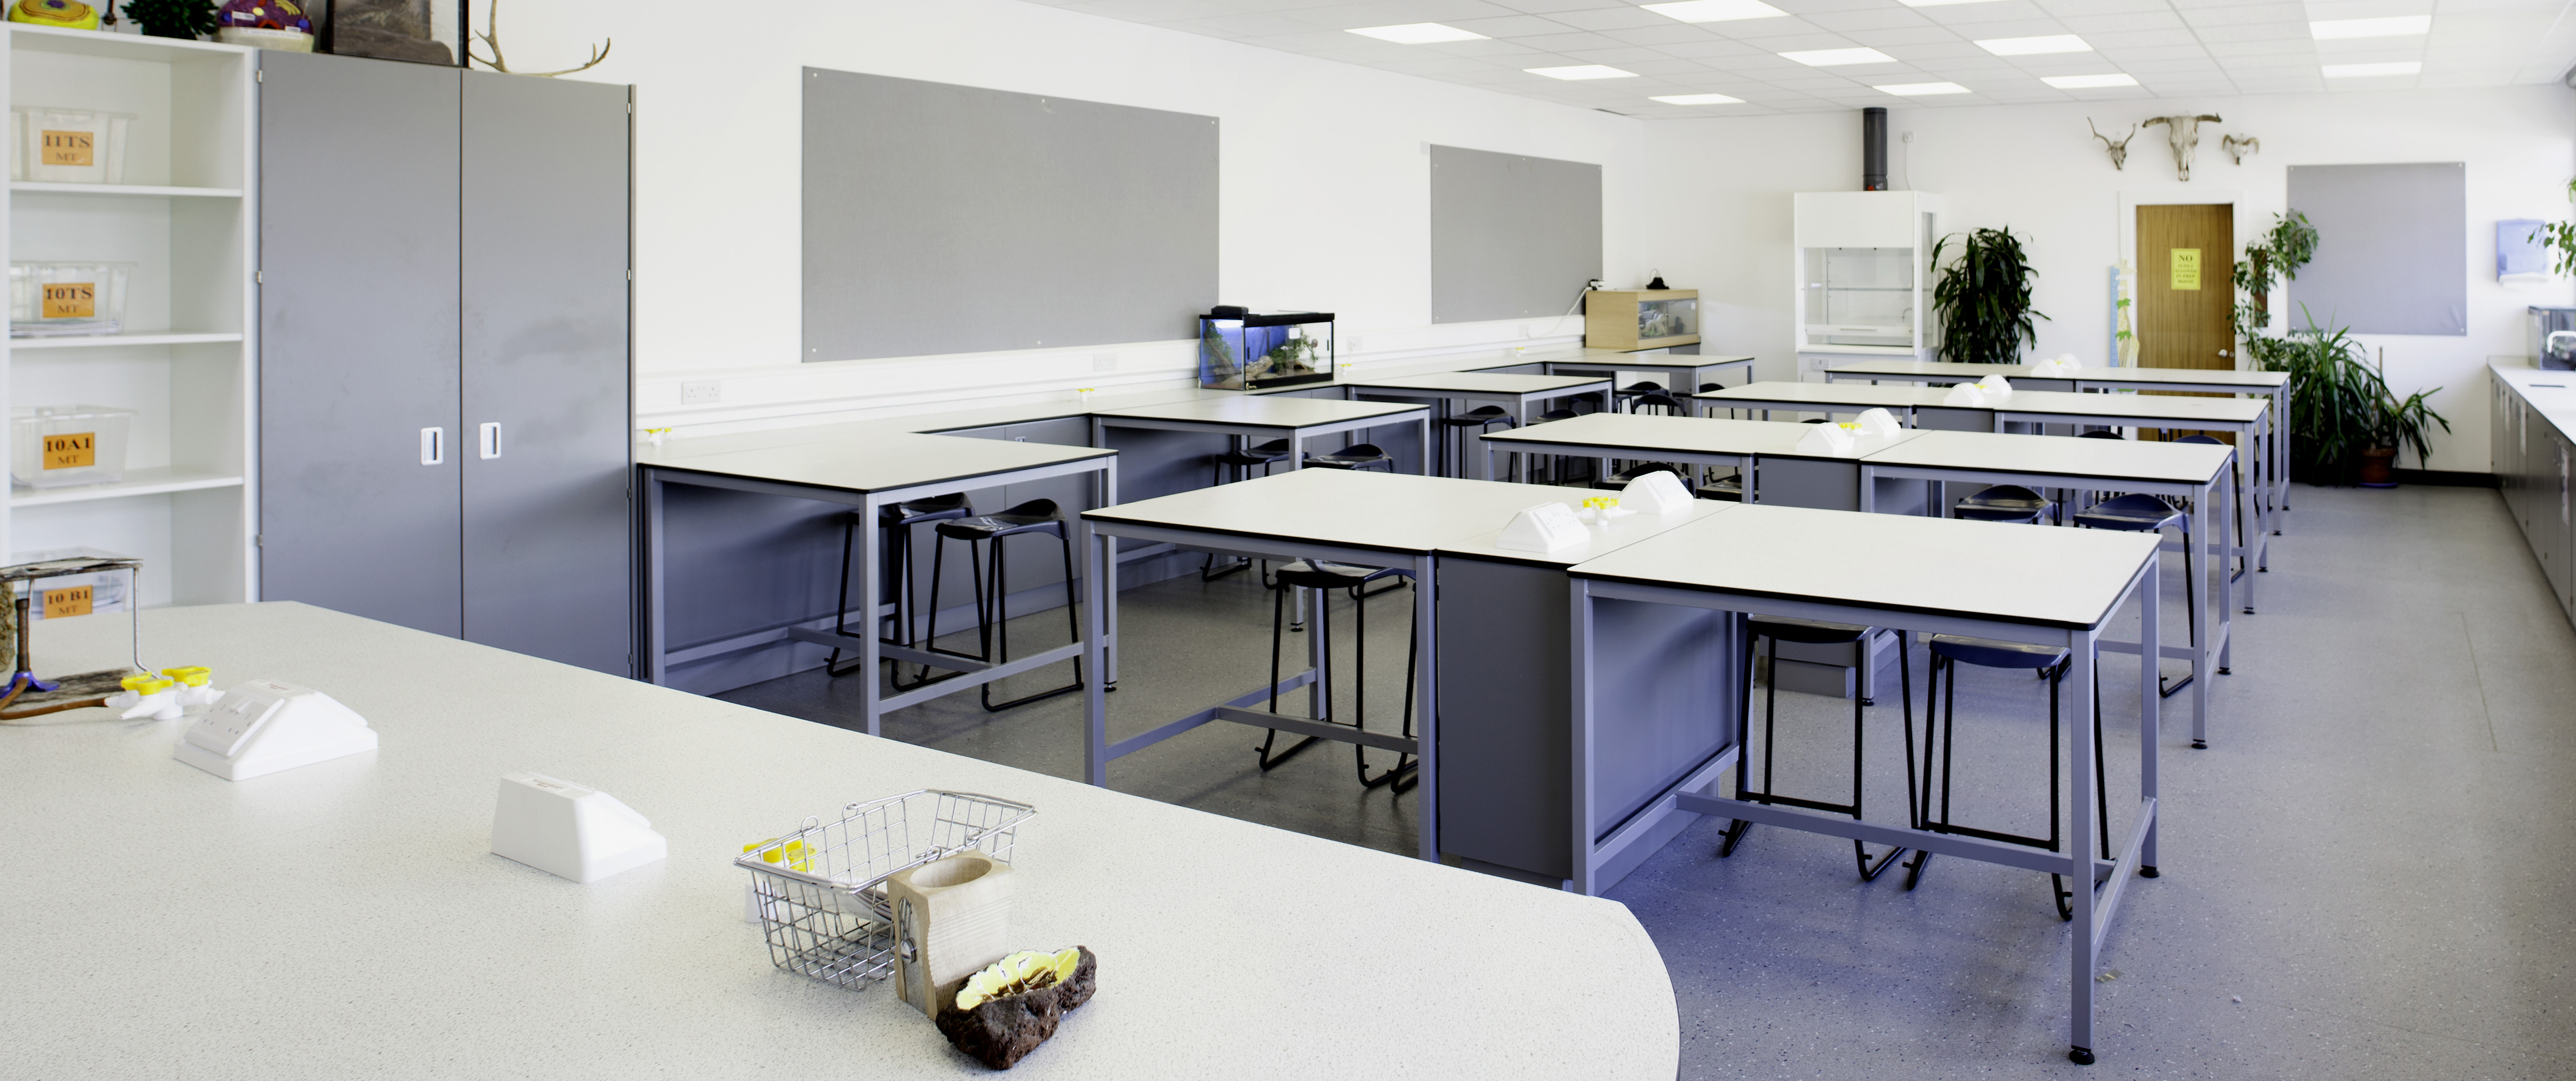 Five Design Elements For School Labs